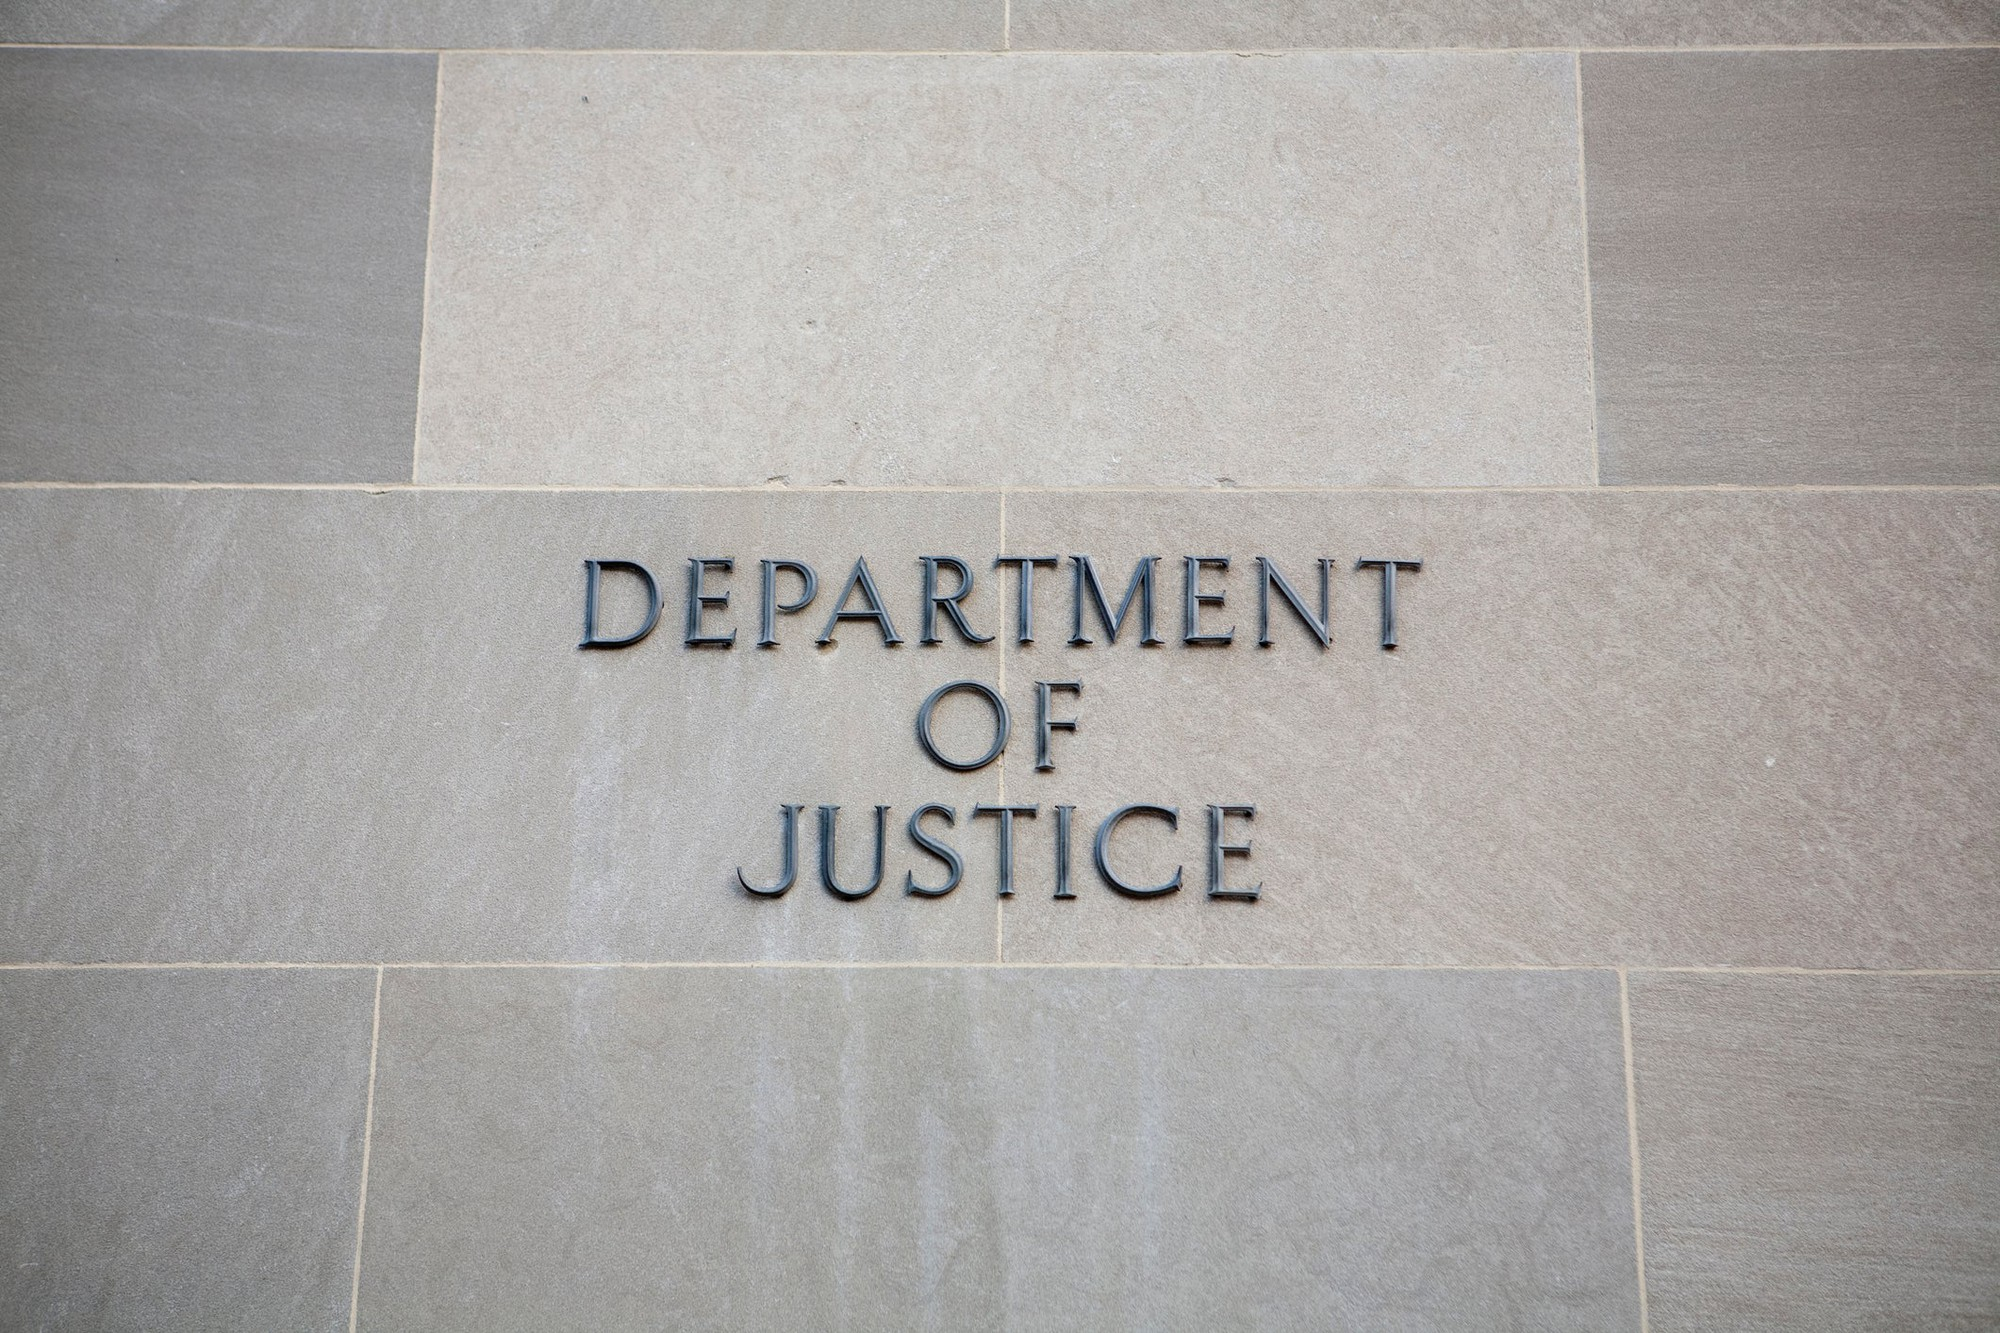 The Department of Justice just shut down this insurance merger. (This should be on investors' radar)